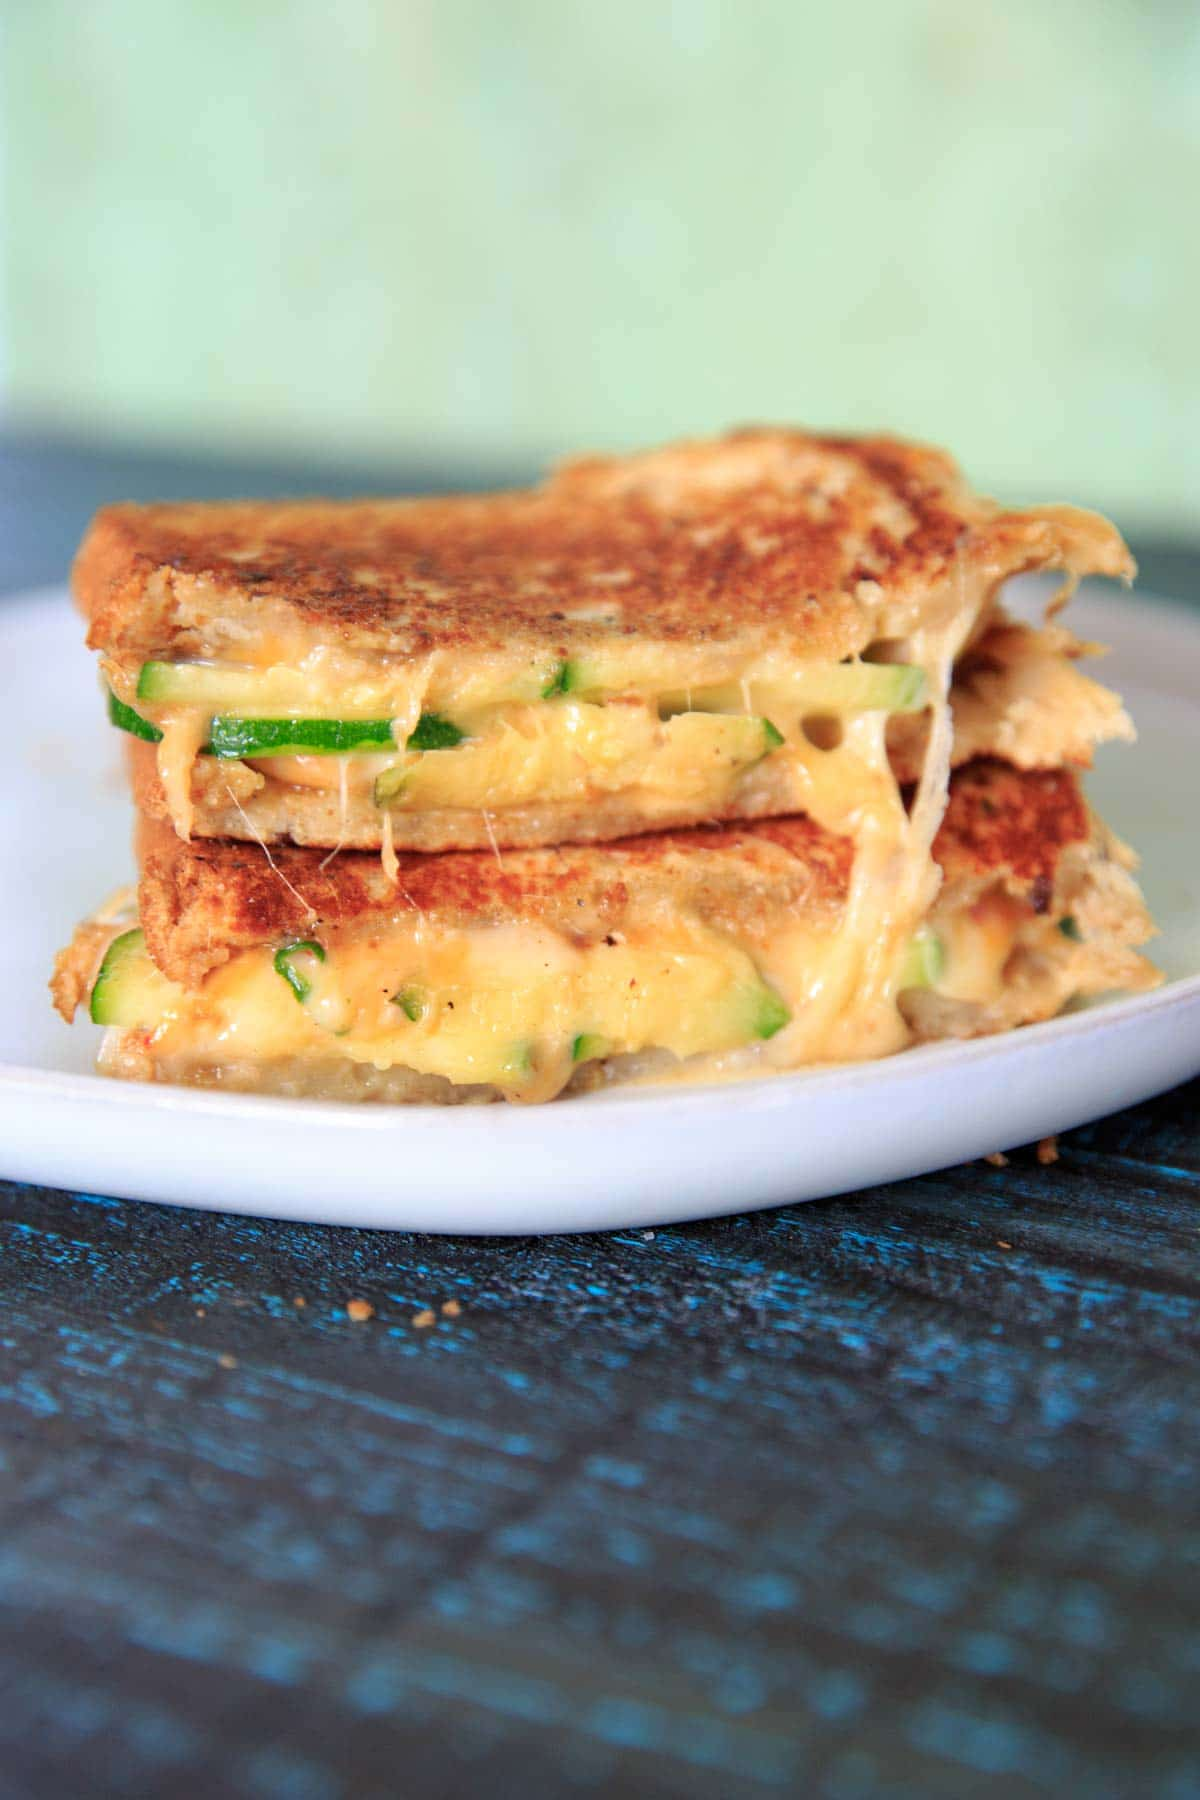 Have a bunch of zucchini? Add some to a warm, melty grilled cheese sandwich! The crunch from the zucchini is a delicious addition to this comfort food, and you'll hardly even notice you're getting a serving of vegetables.